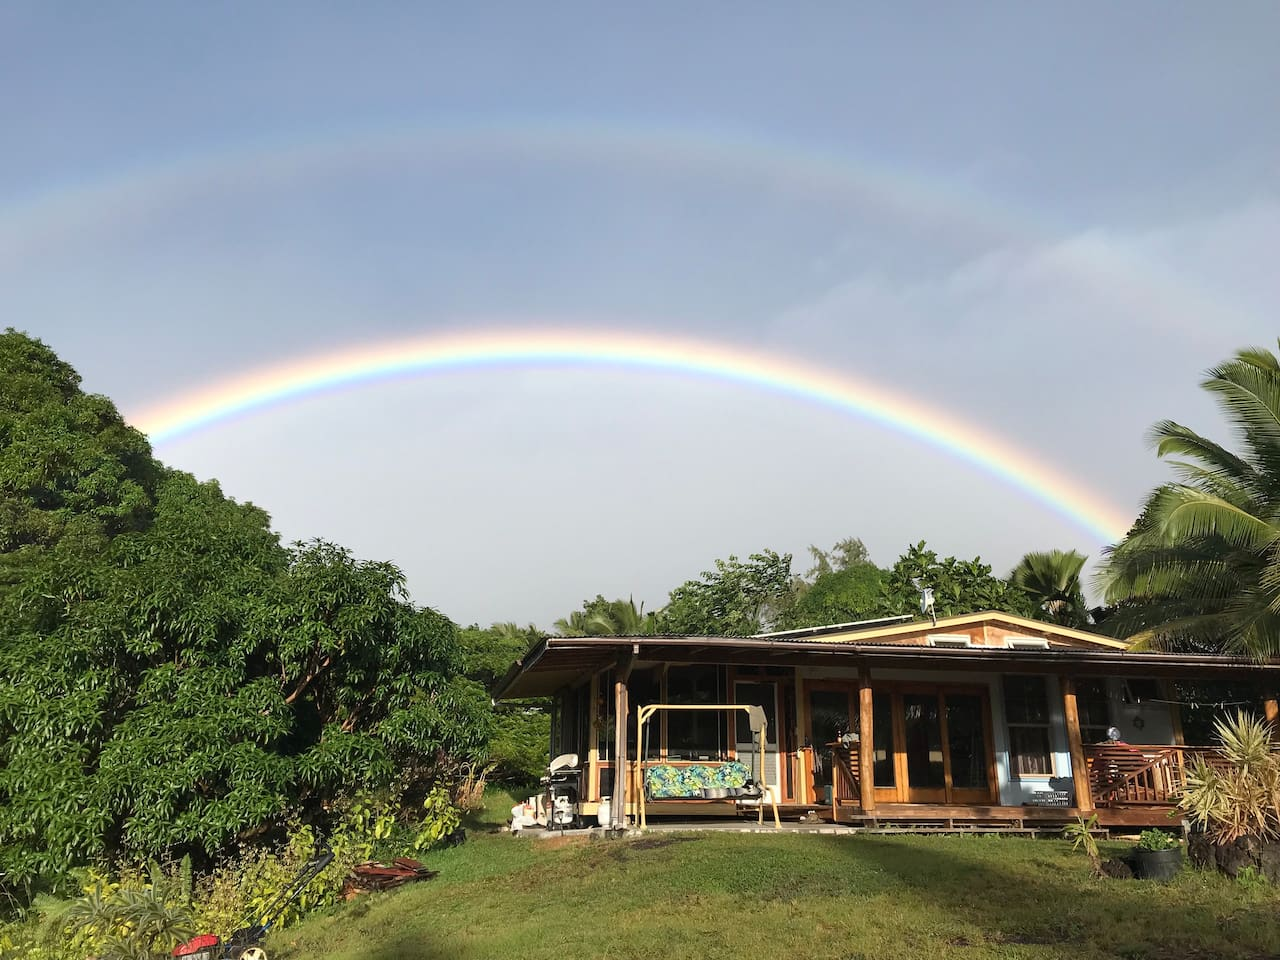 Come and stay over the rainbow or more accurately under it. As the sun rises and brings a morning drizzle there will be a rainbow over the house. Double rainbows are common. This porch swing is one of my favorite chill spots at The Sweet Spot